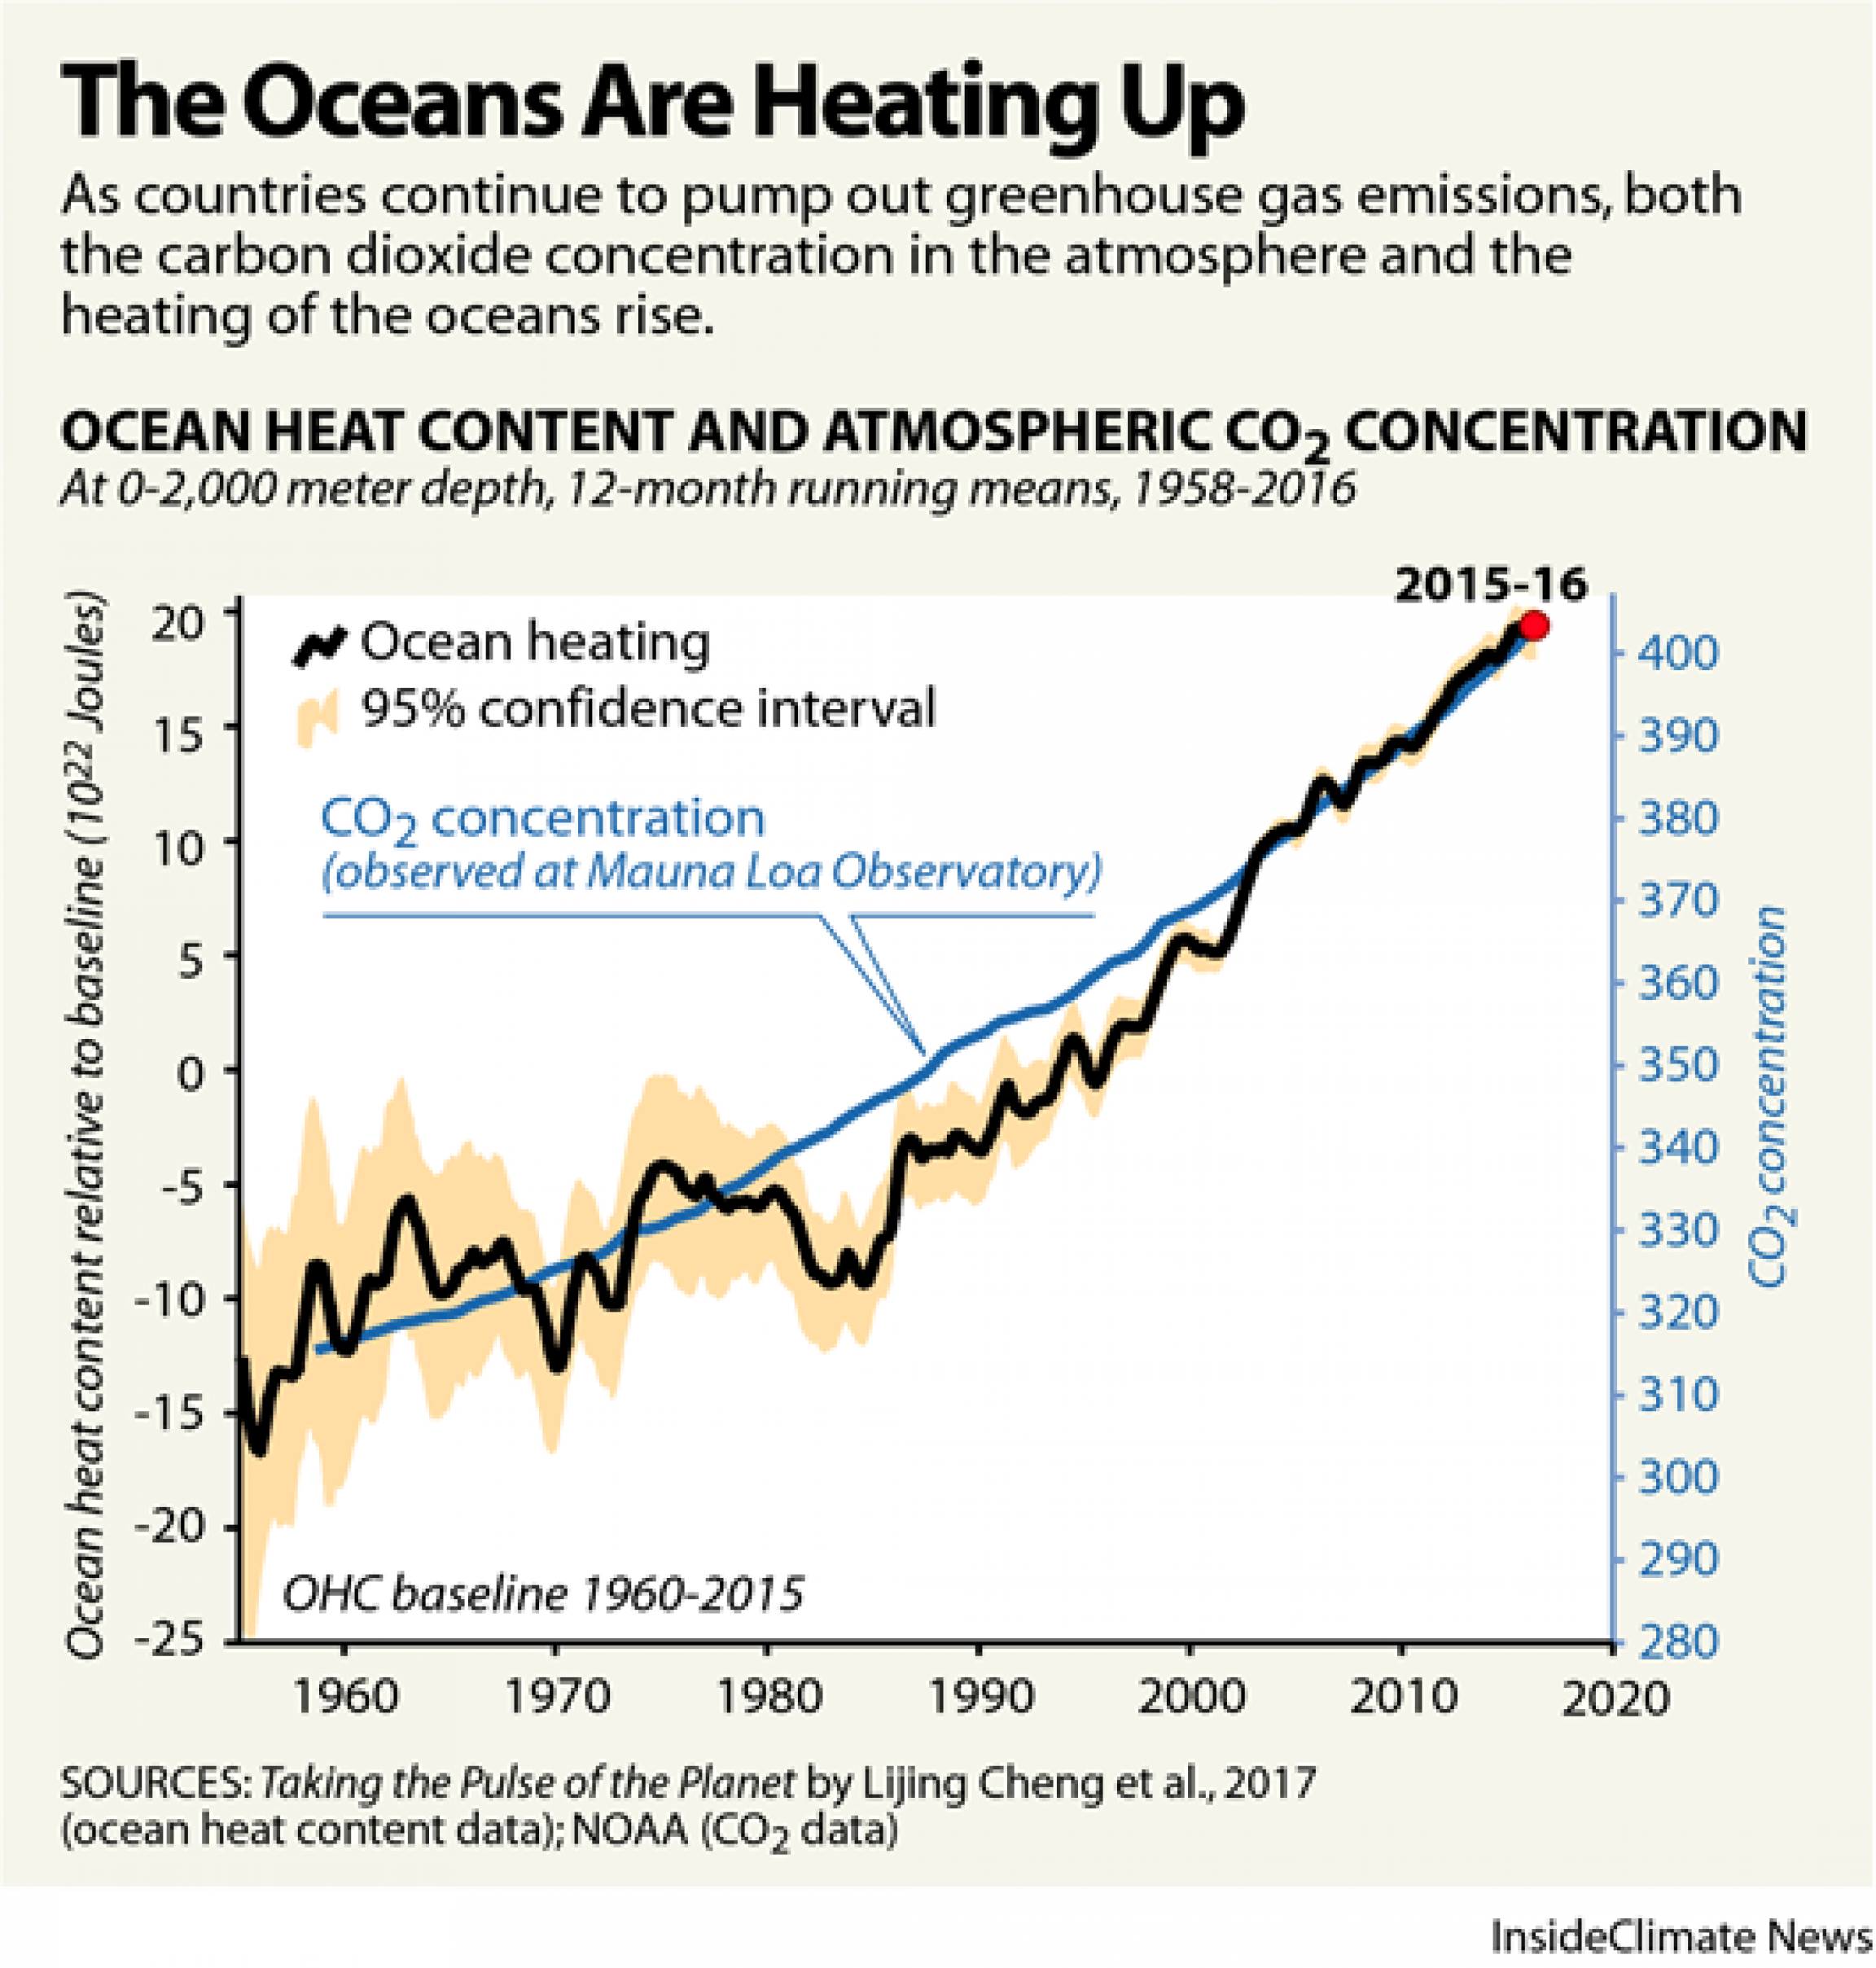 A graph showing the increasing temperature of the oceas over the years.